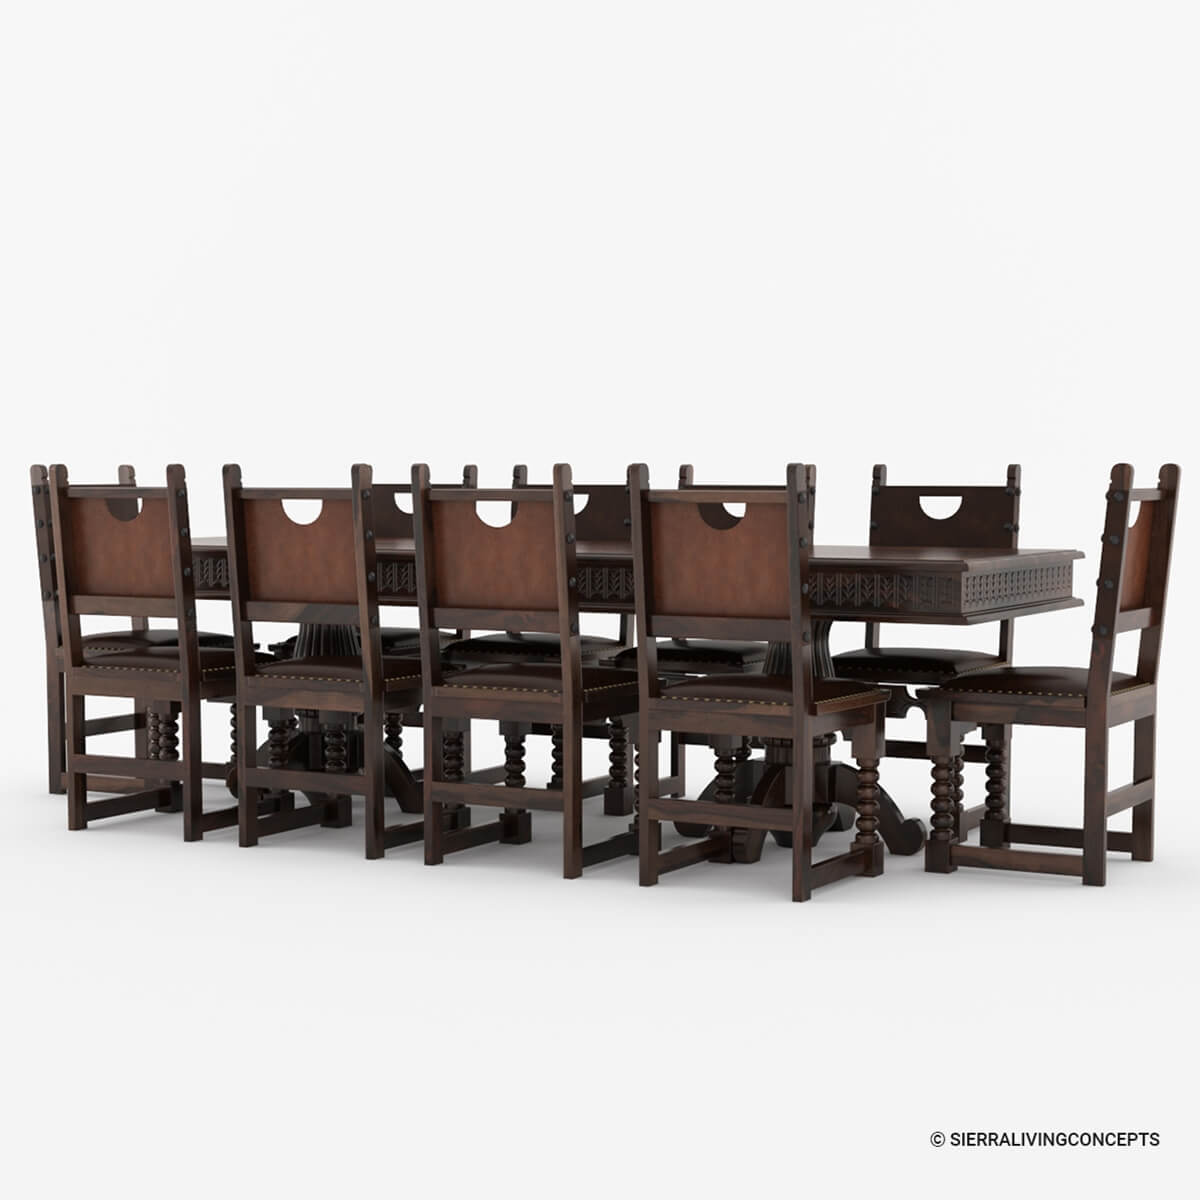 Nottingham solid wood large rustic dining room table chair set for Solid wood dining table sets